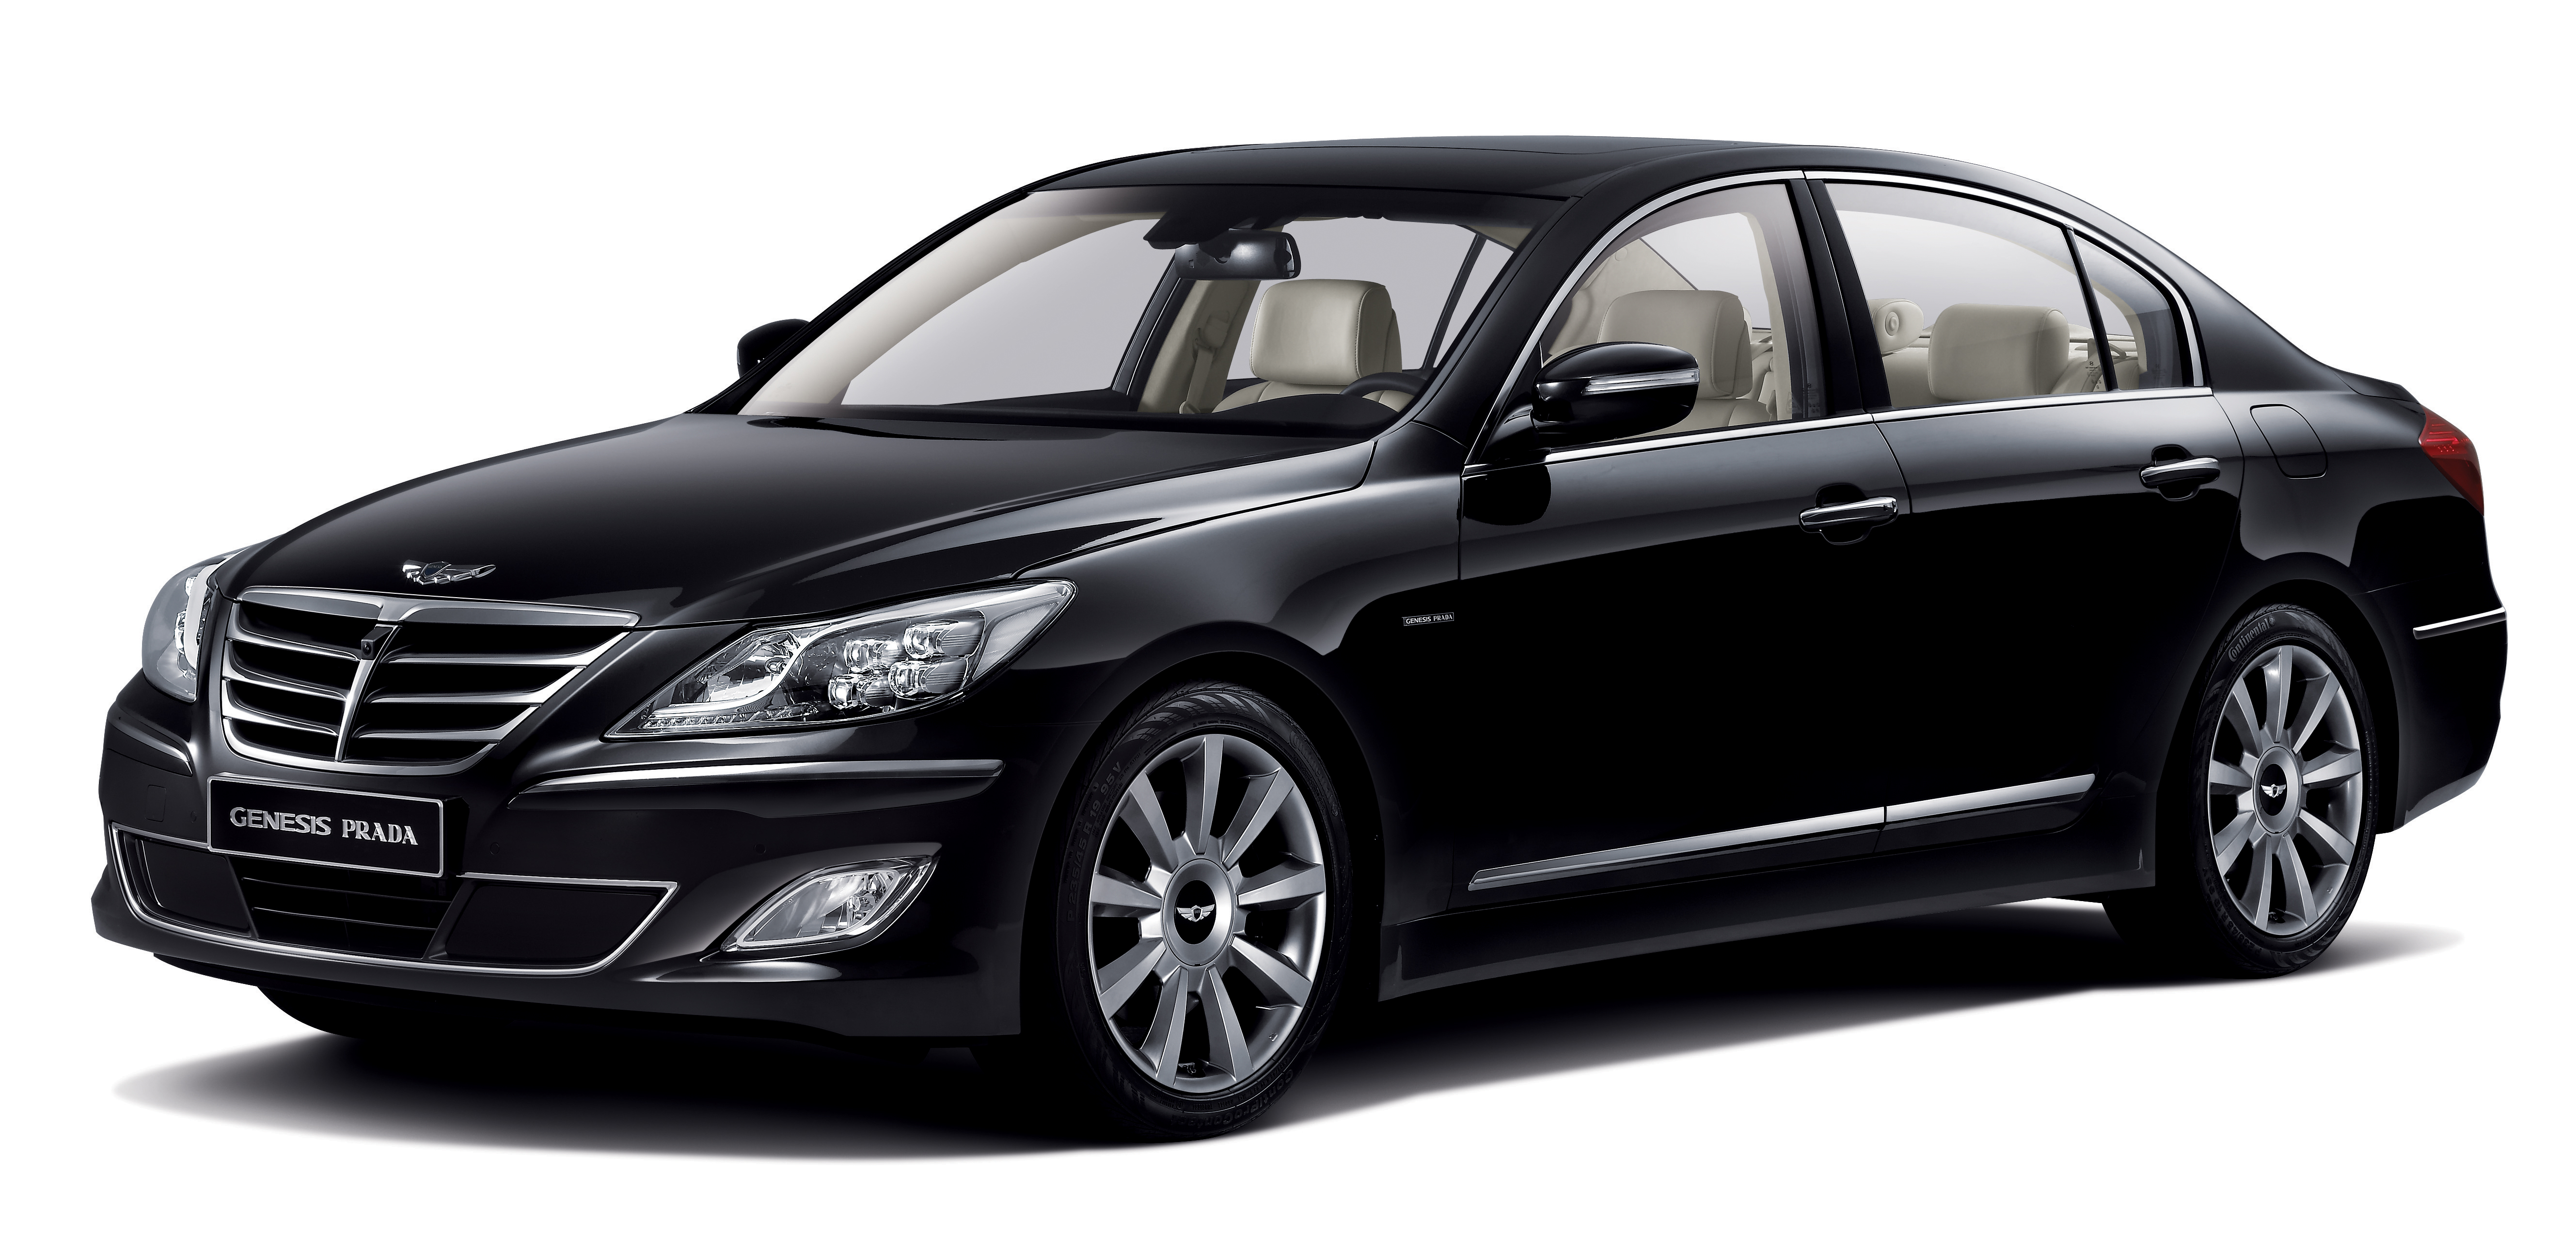 2012 Hyundai Genesis Prada Limited Edition Review Top Speed